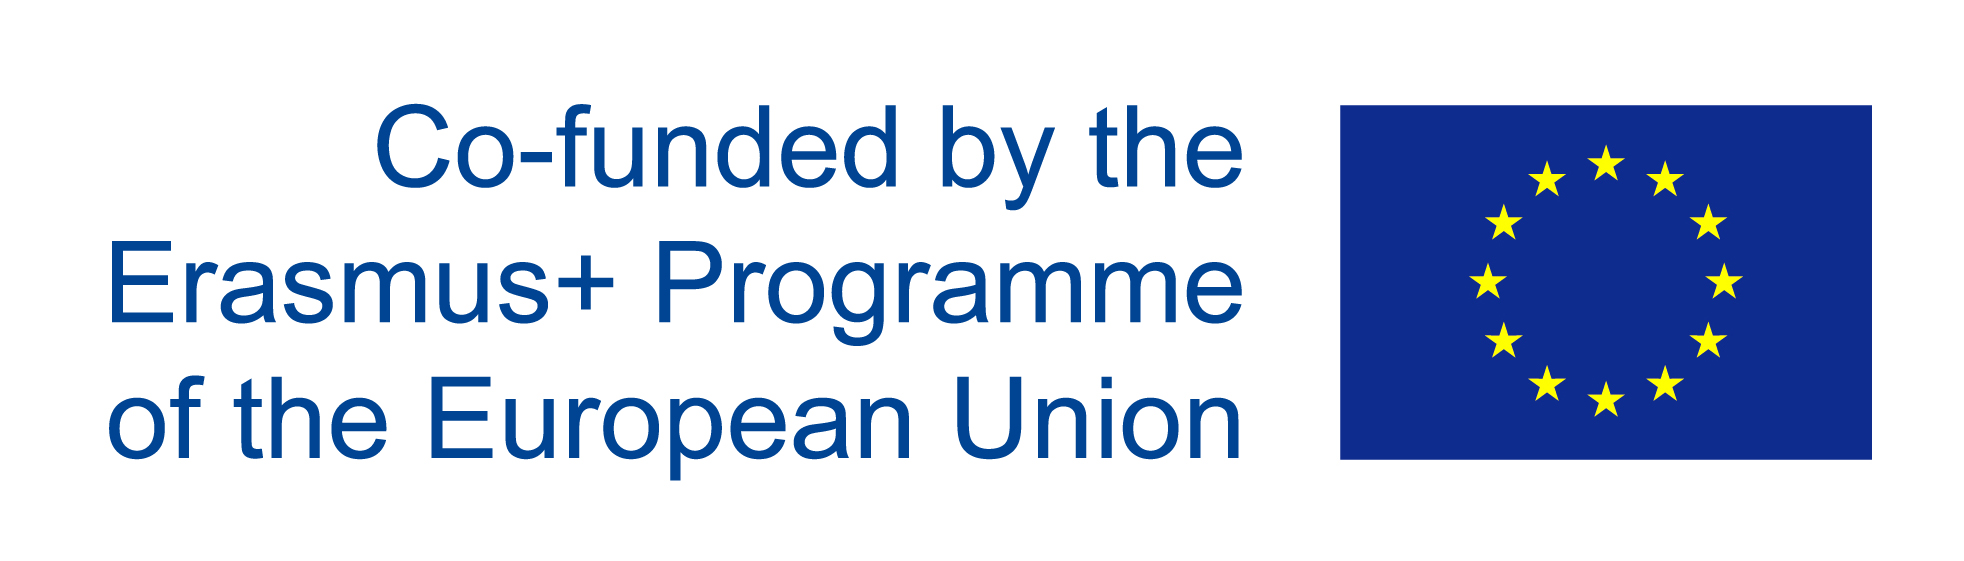 Acknowledgement of the support of the European Union Erasmus+ programme